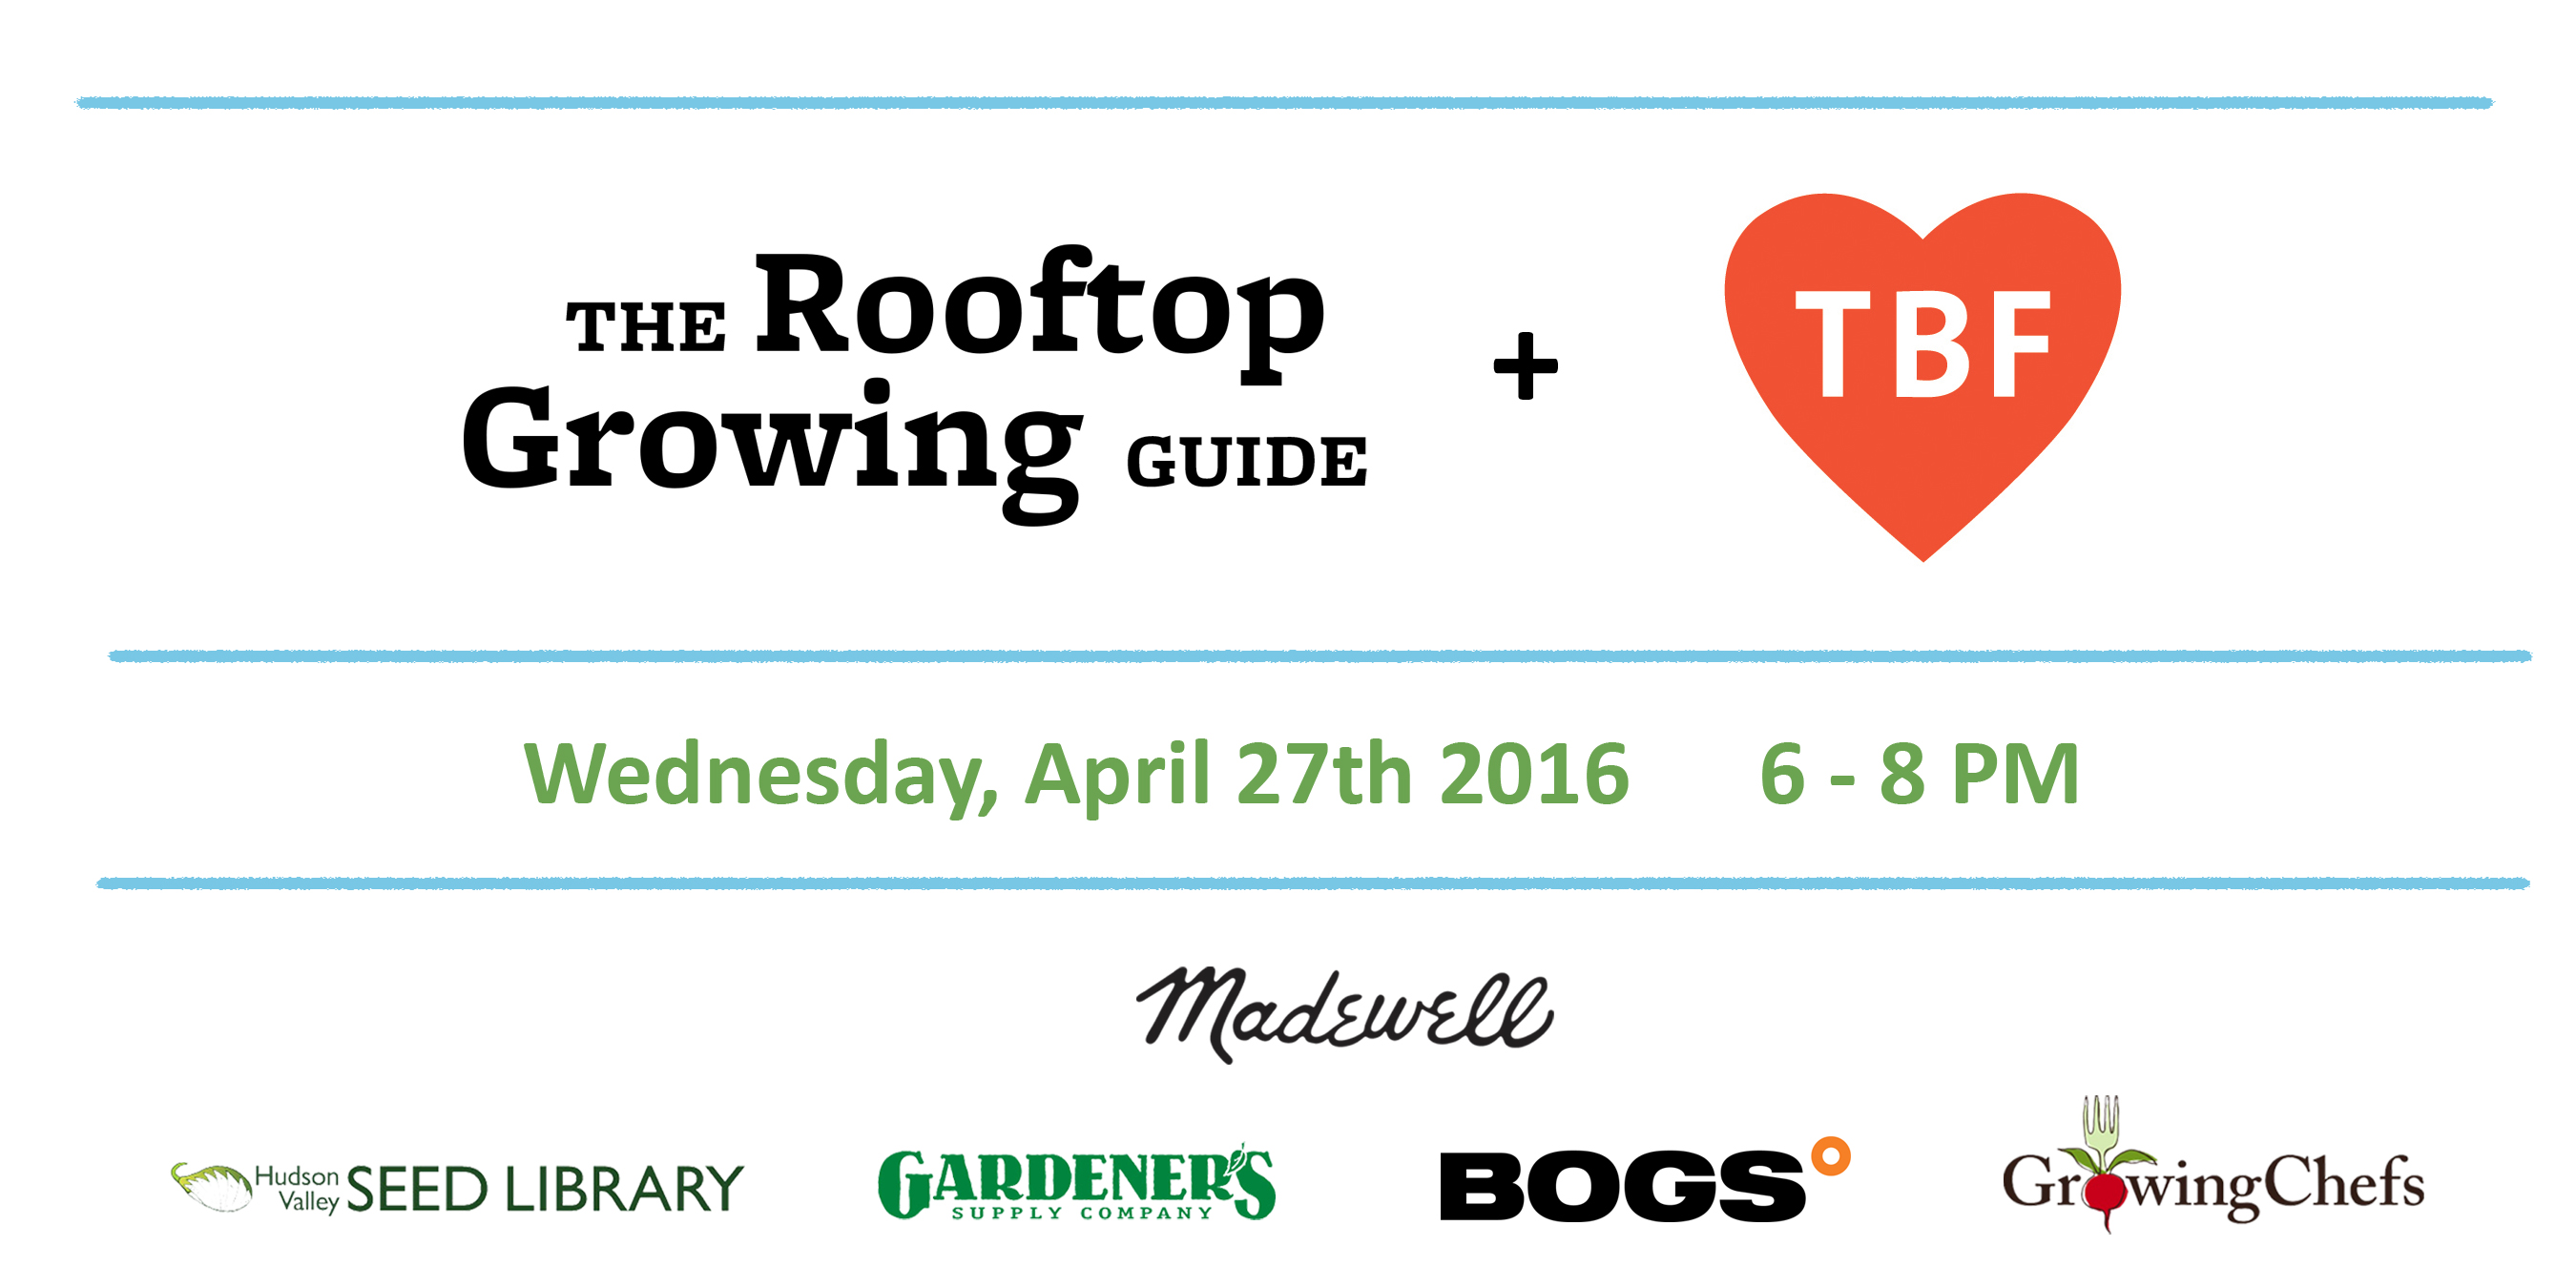 The Bachelor Farmer and the Rooftop Growing Guide